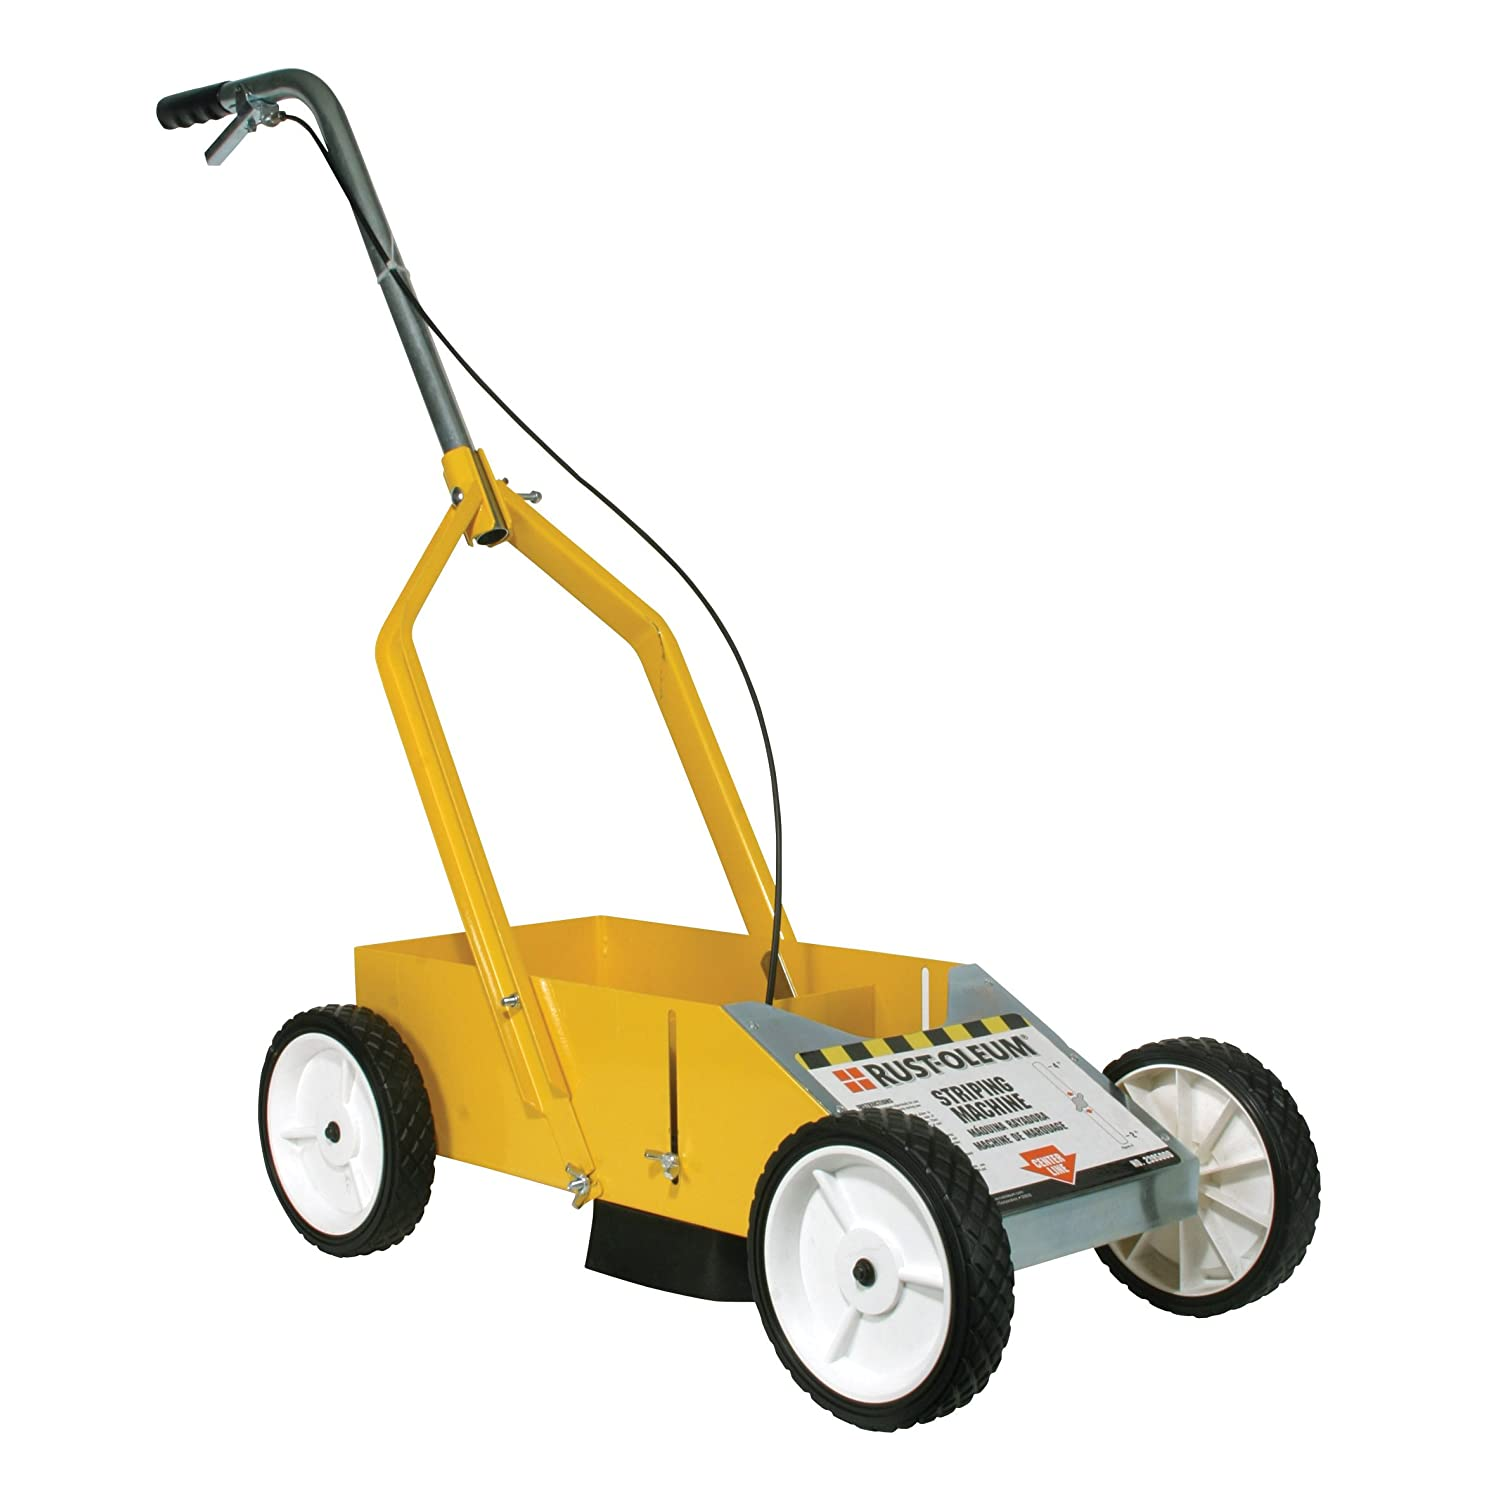 parking lot paint striping machine athletic field ebay